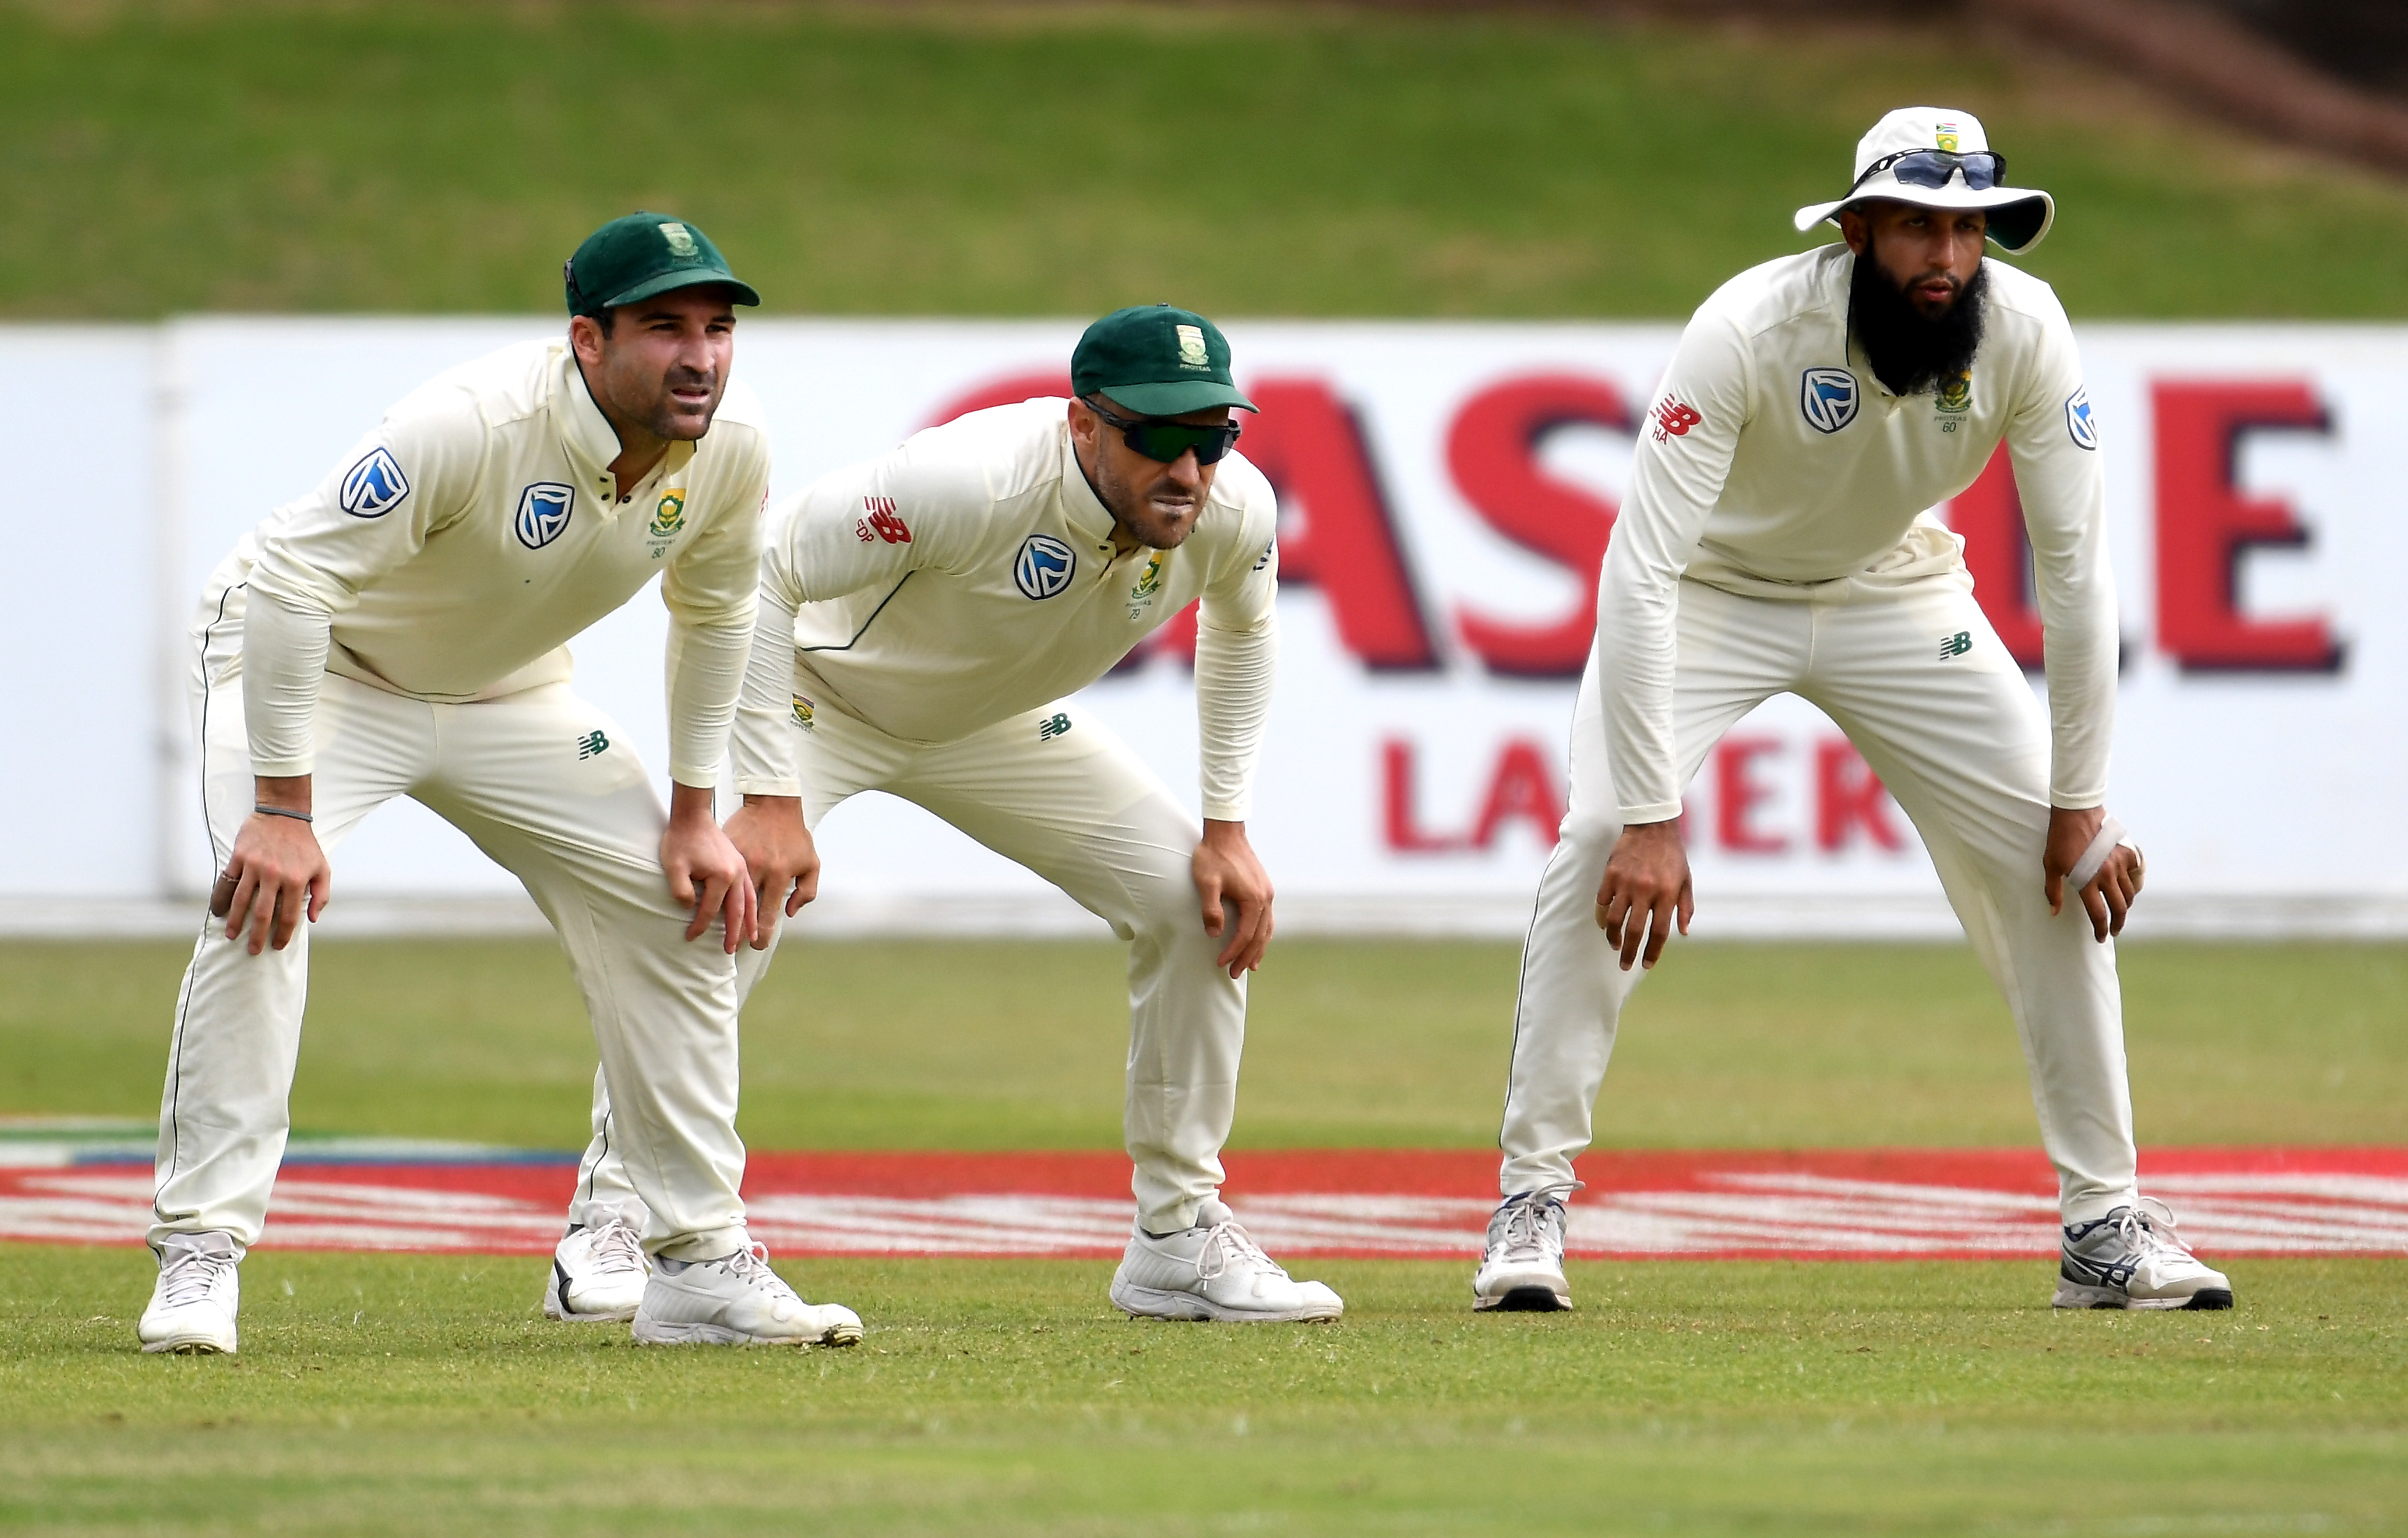 Dean Elgar, Faf du Plessis and Hashim Amla of South Africa during day 3 of the 2nd Castle Lager Test match between South Africa and Sri Lanka at St George's Park on February 23, 2019 in Port Elizabeth, South Africa.